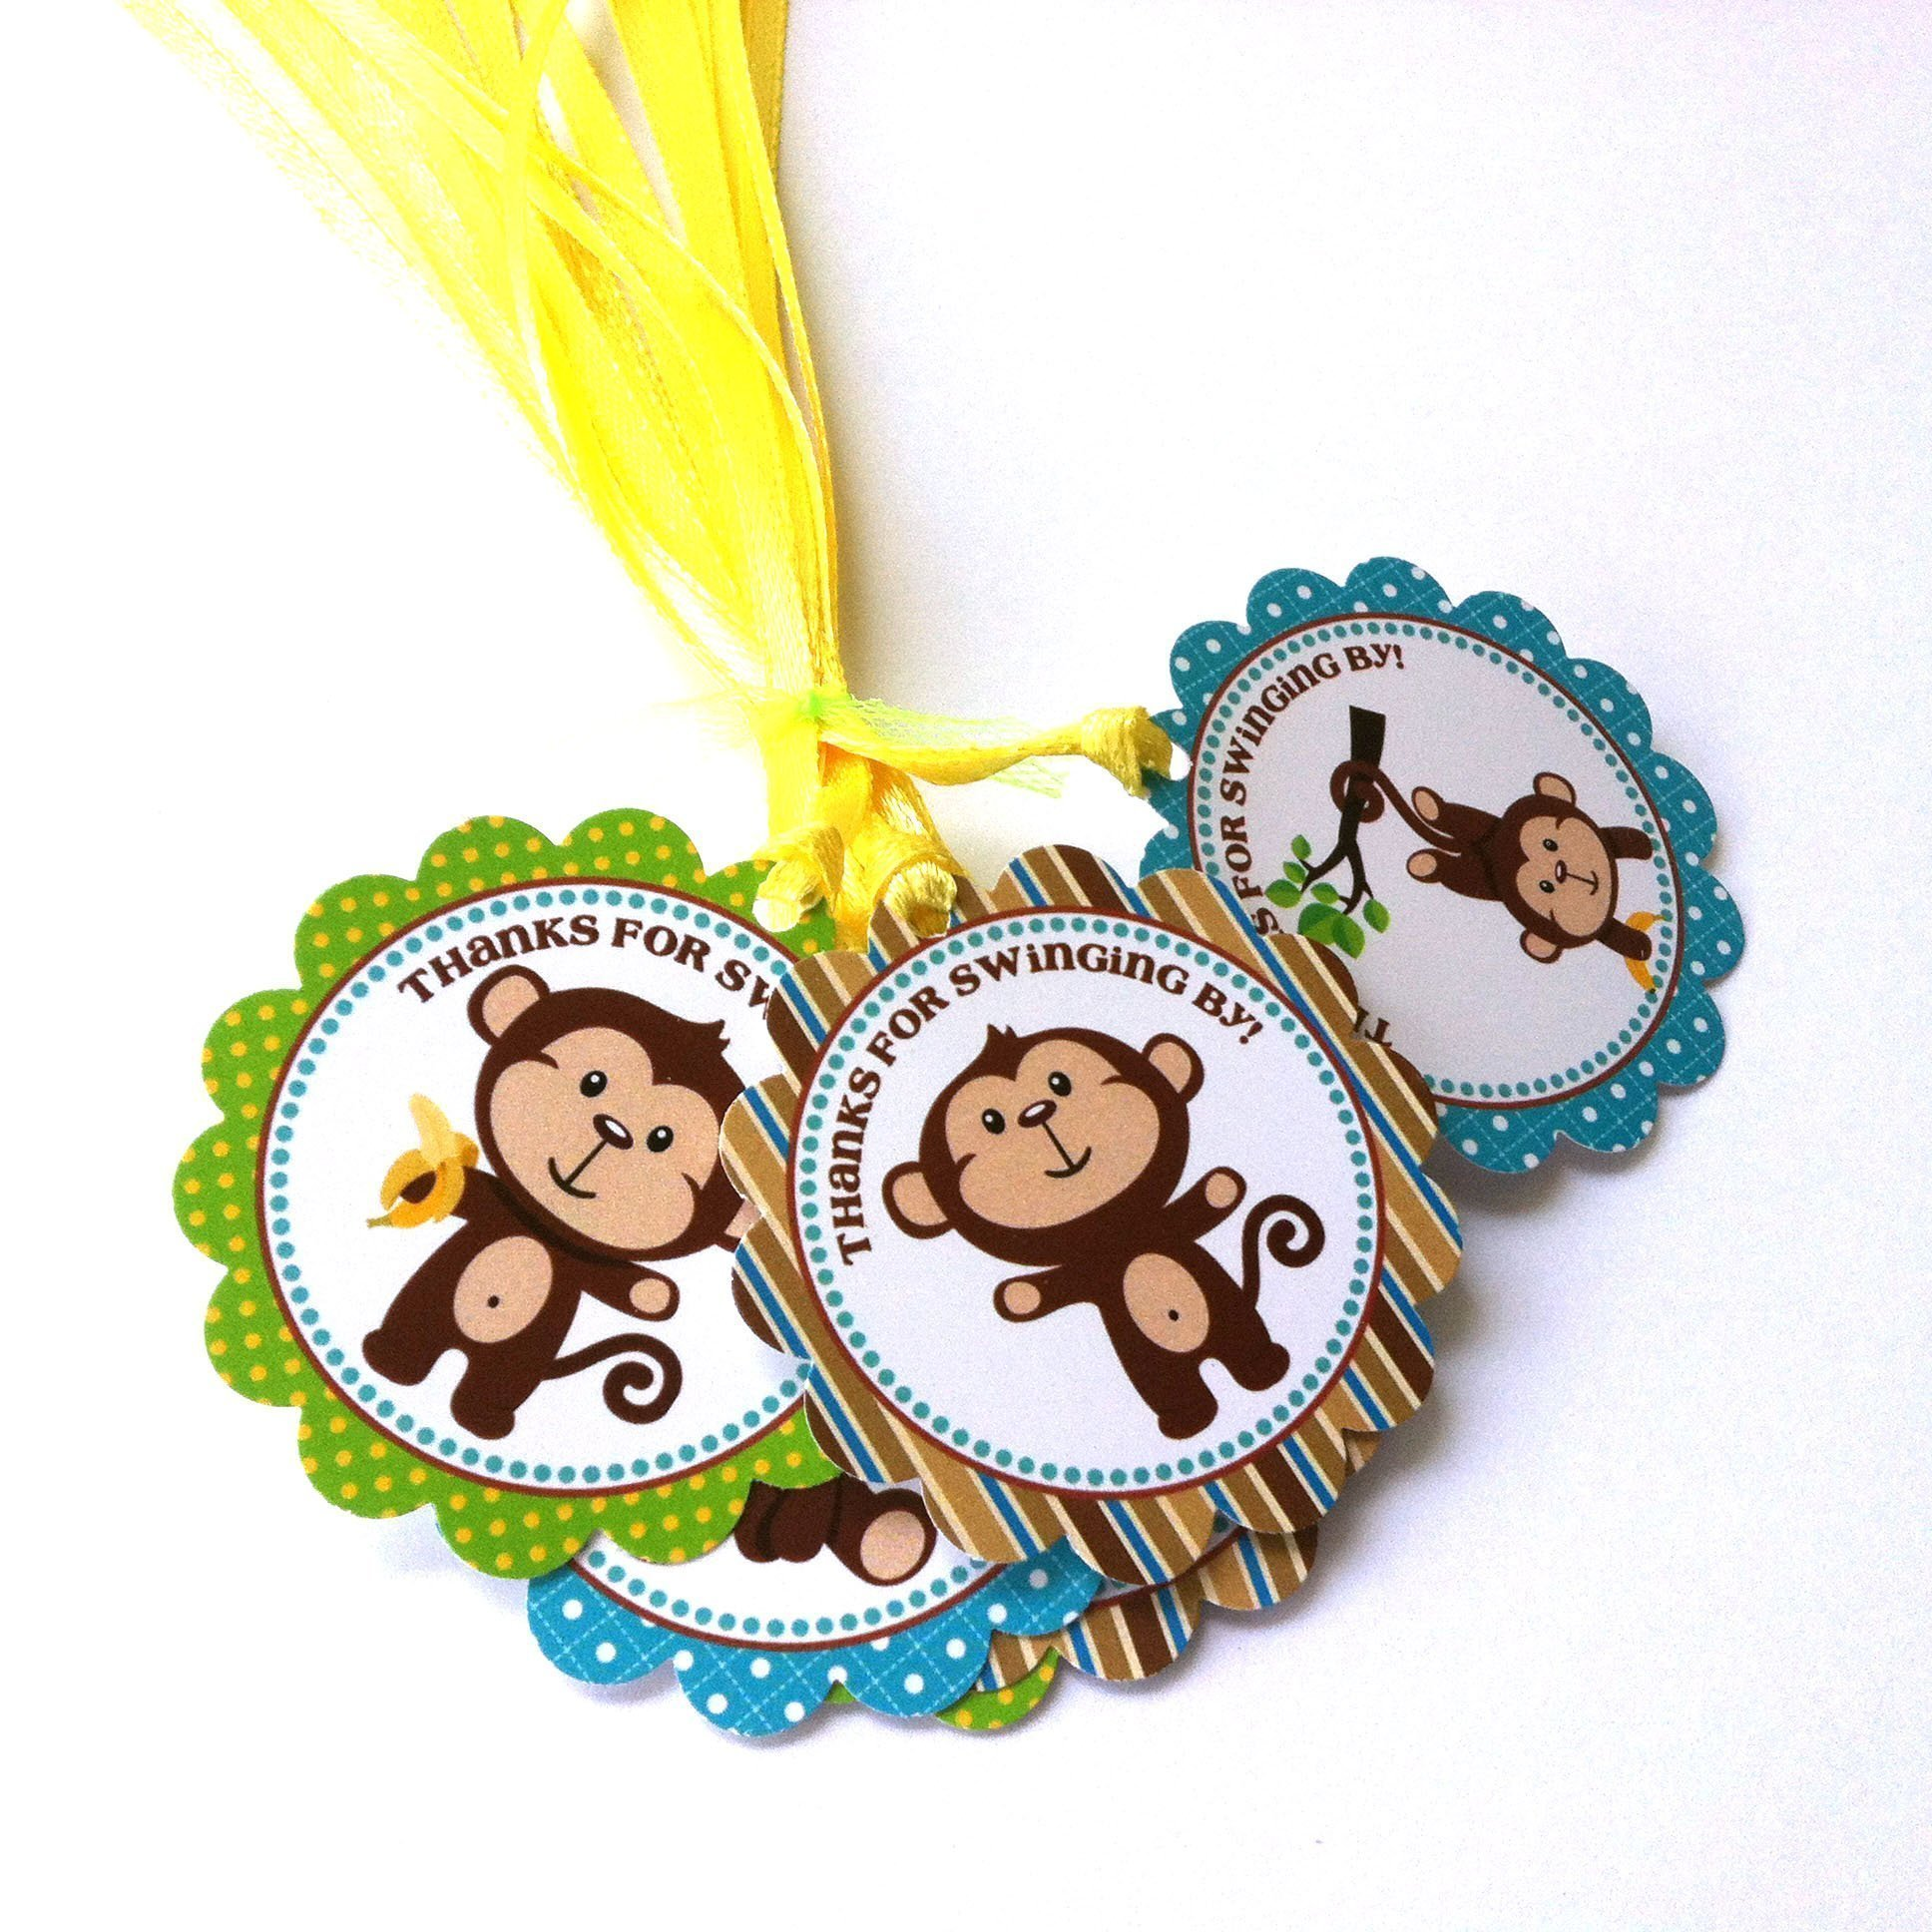 Monkey Thank You Favor Tags - Thanks for Swinging By Birthday Baby Shower Gift Tags - Set of 12